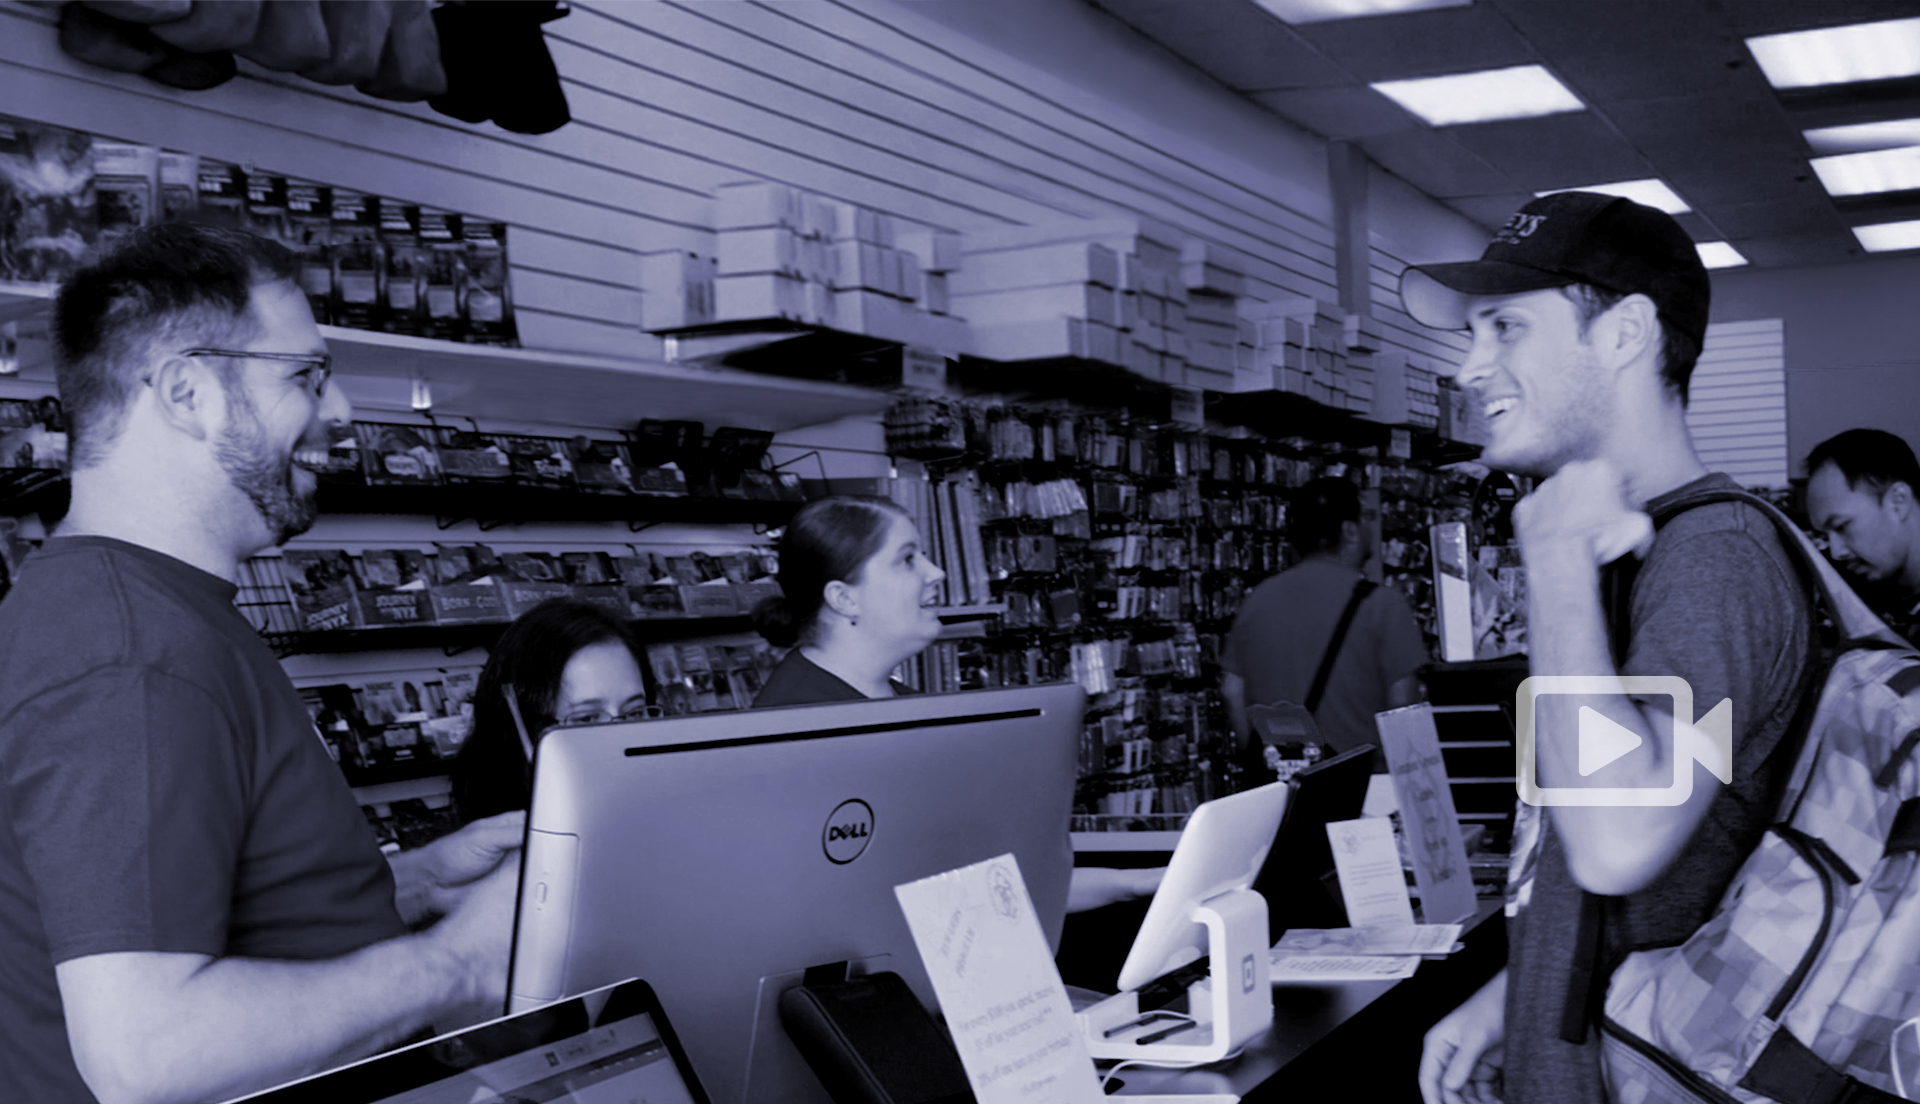 Header image, men smiling across a store counter